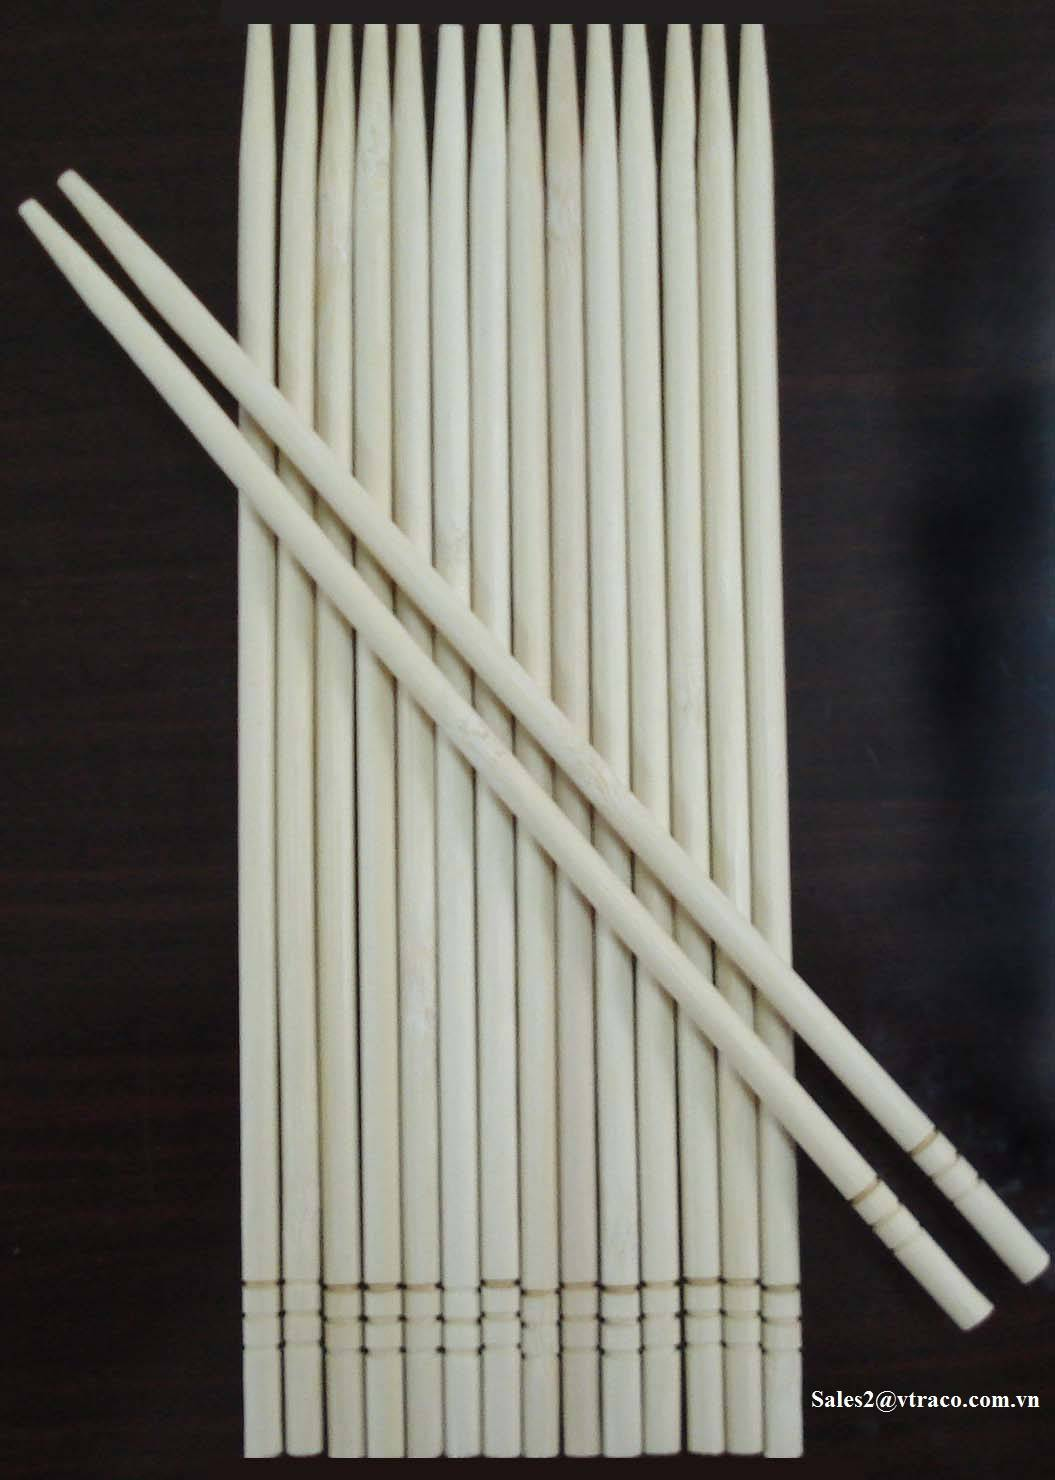 Bamboo chopsticks from Vietnam